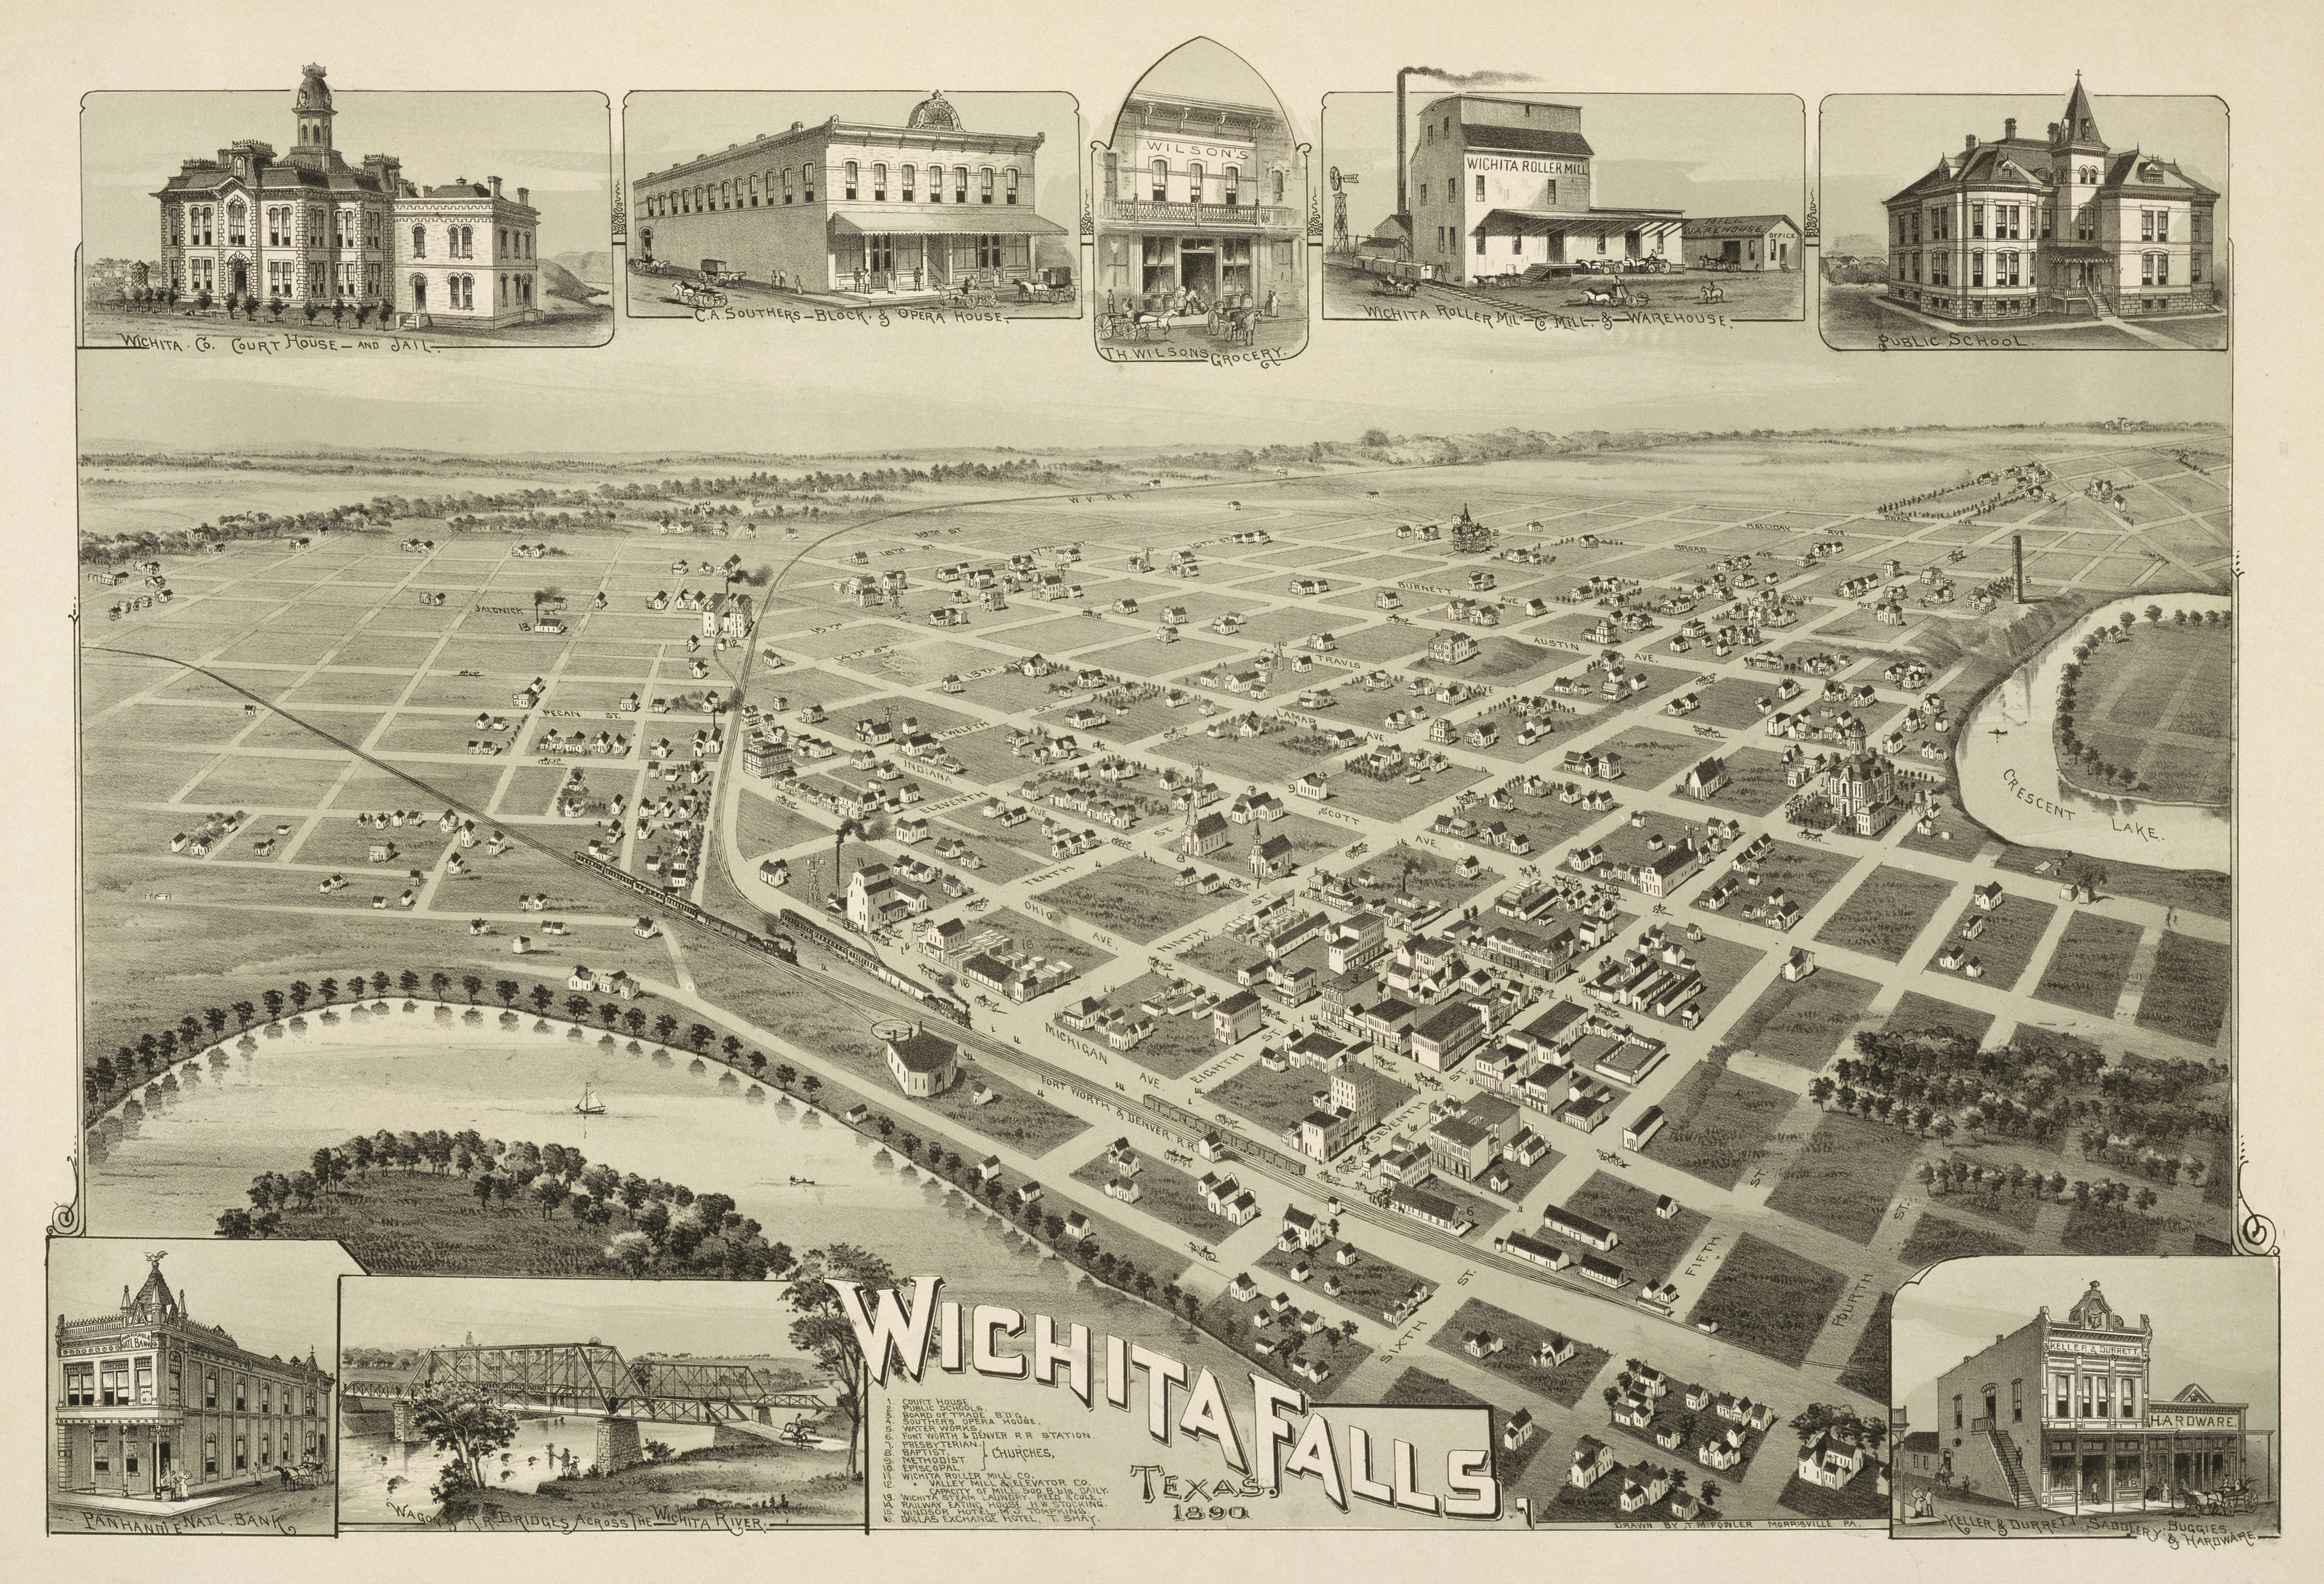 Old map wichita falls 1890 jpg